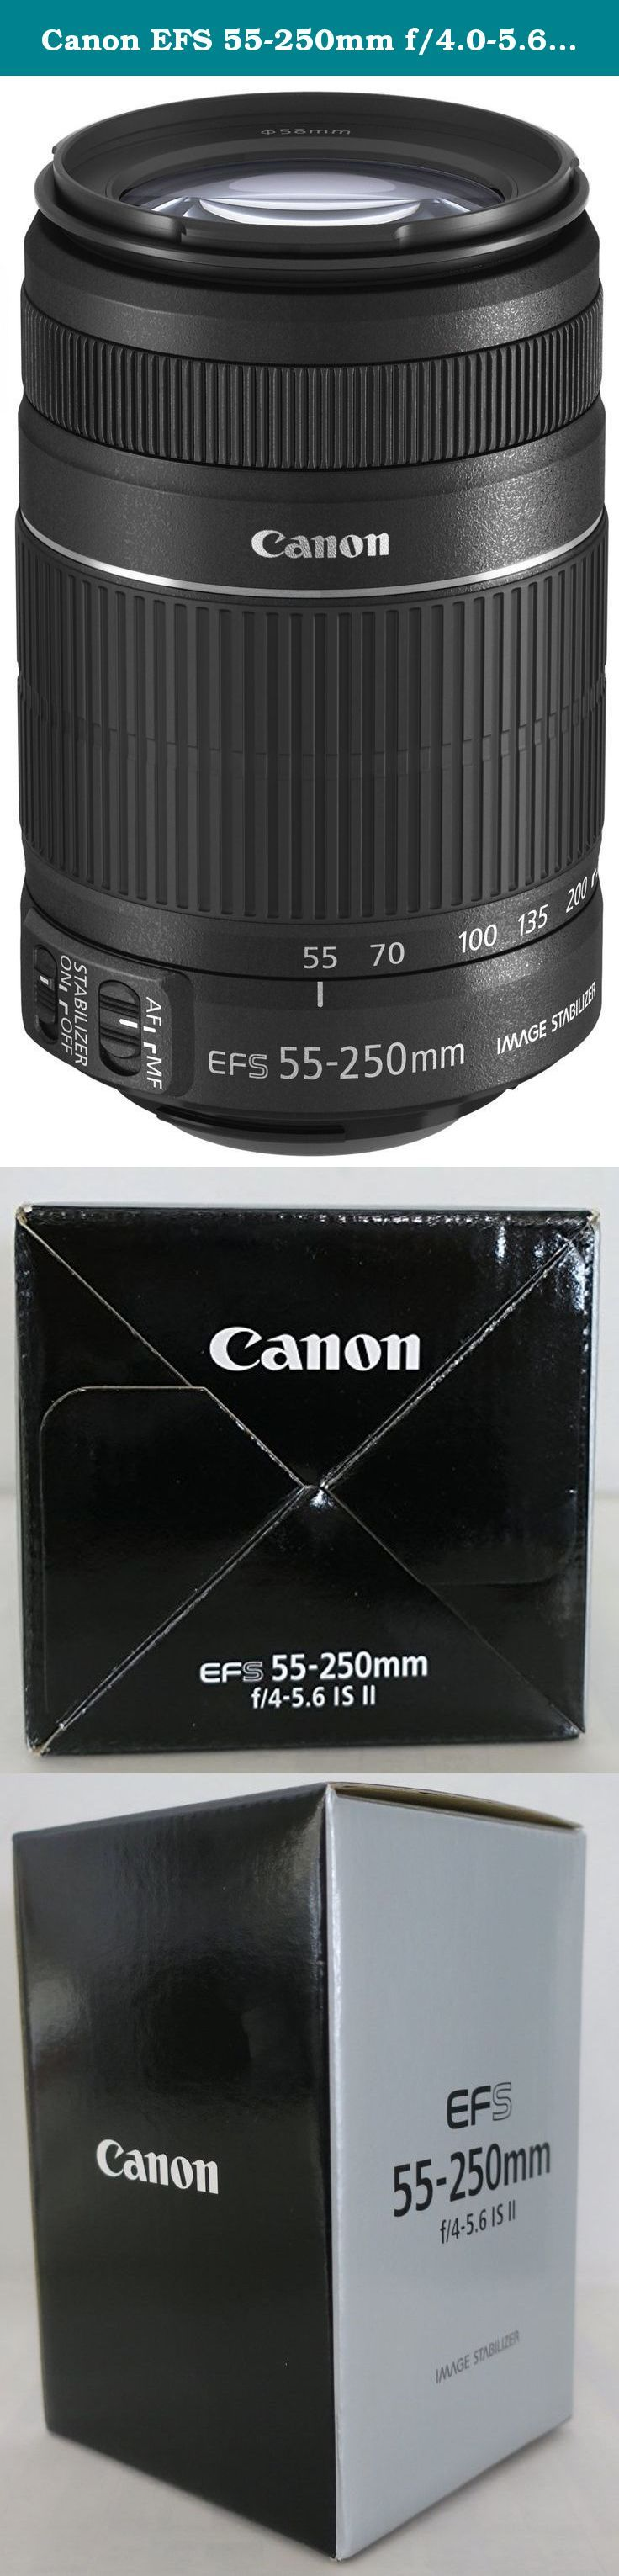 Canon EFS 55-250mm f/4.0-5.6 IS II Telephoto Zoom Lens for Canon Digital SLR Cameras - International Version (No Warranty). The Canon EF-S 55-250mm f/4-5.6 IS Lens is a compact and lightweight telephoto zoom lens that is specifically designed for the range of EOS digital SLR cameras that use the smaller EF-S lens mount. Combining powerful performance with high image quality, this lens offers the equivalent of 88-400mm in 35mm format, and is ideal for photographers seeking an affordable...